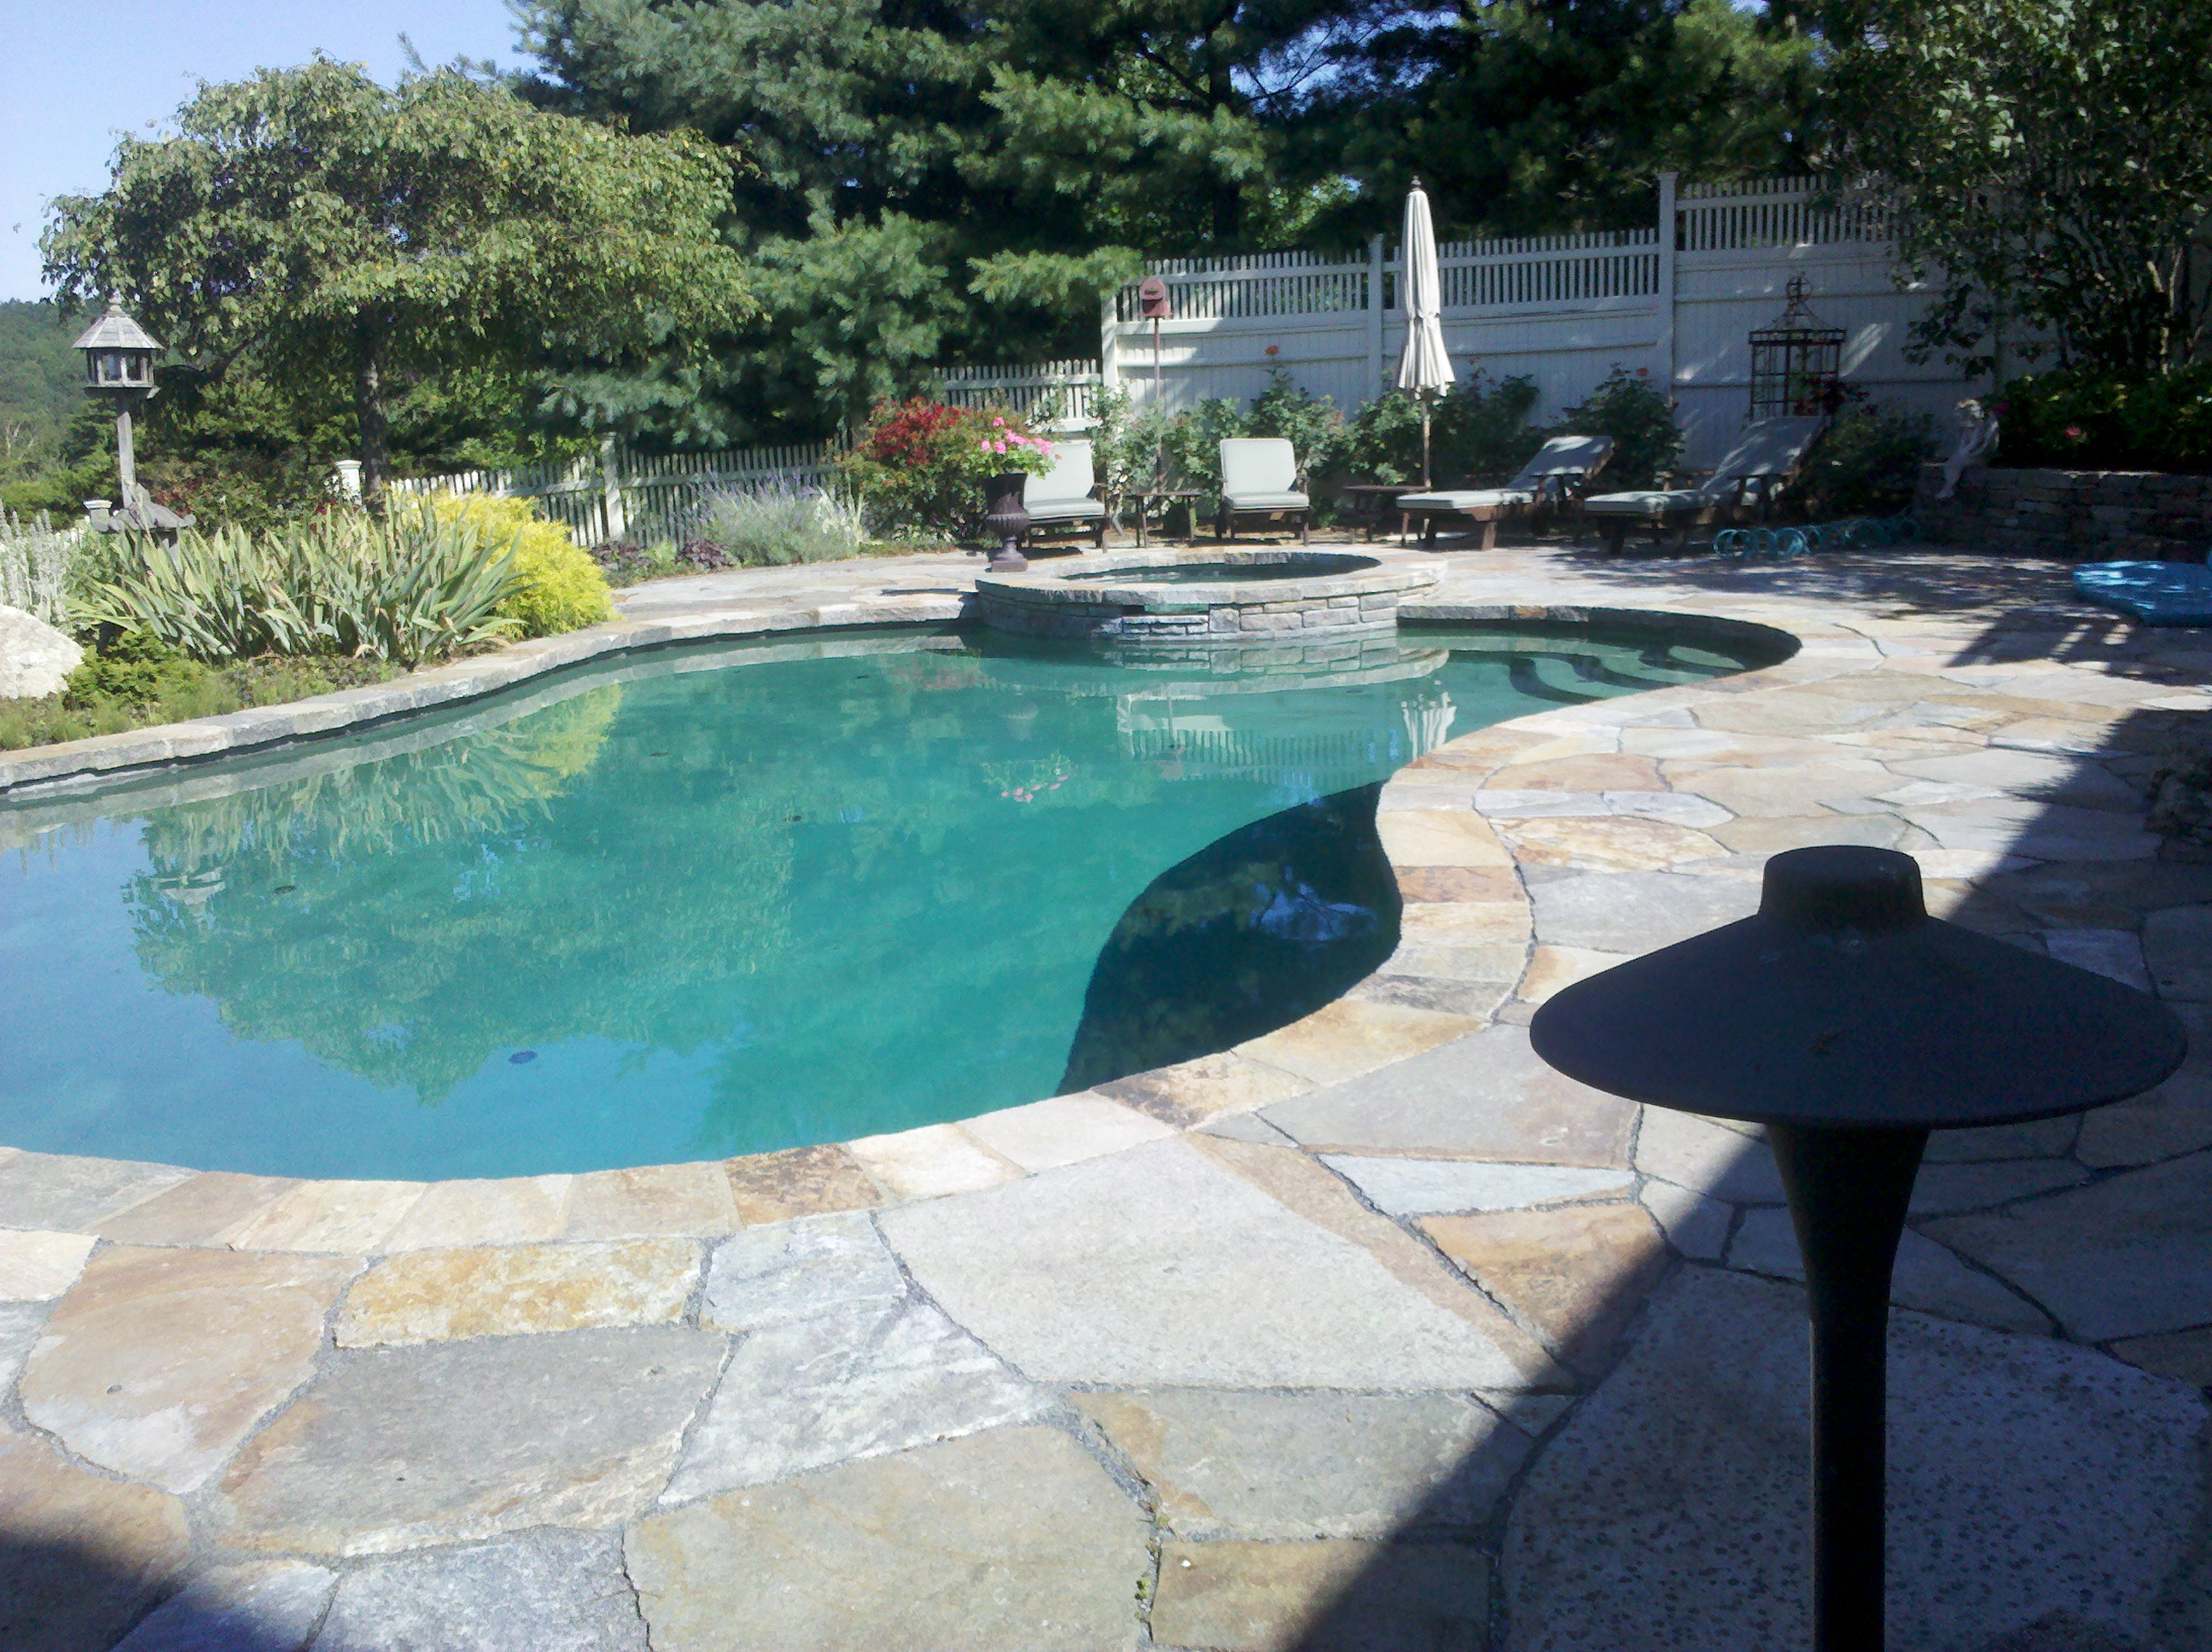 Stone masonry repair needed on this pool deck and patio. Masonry ...